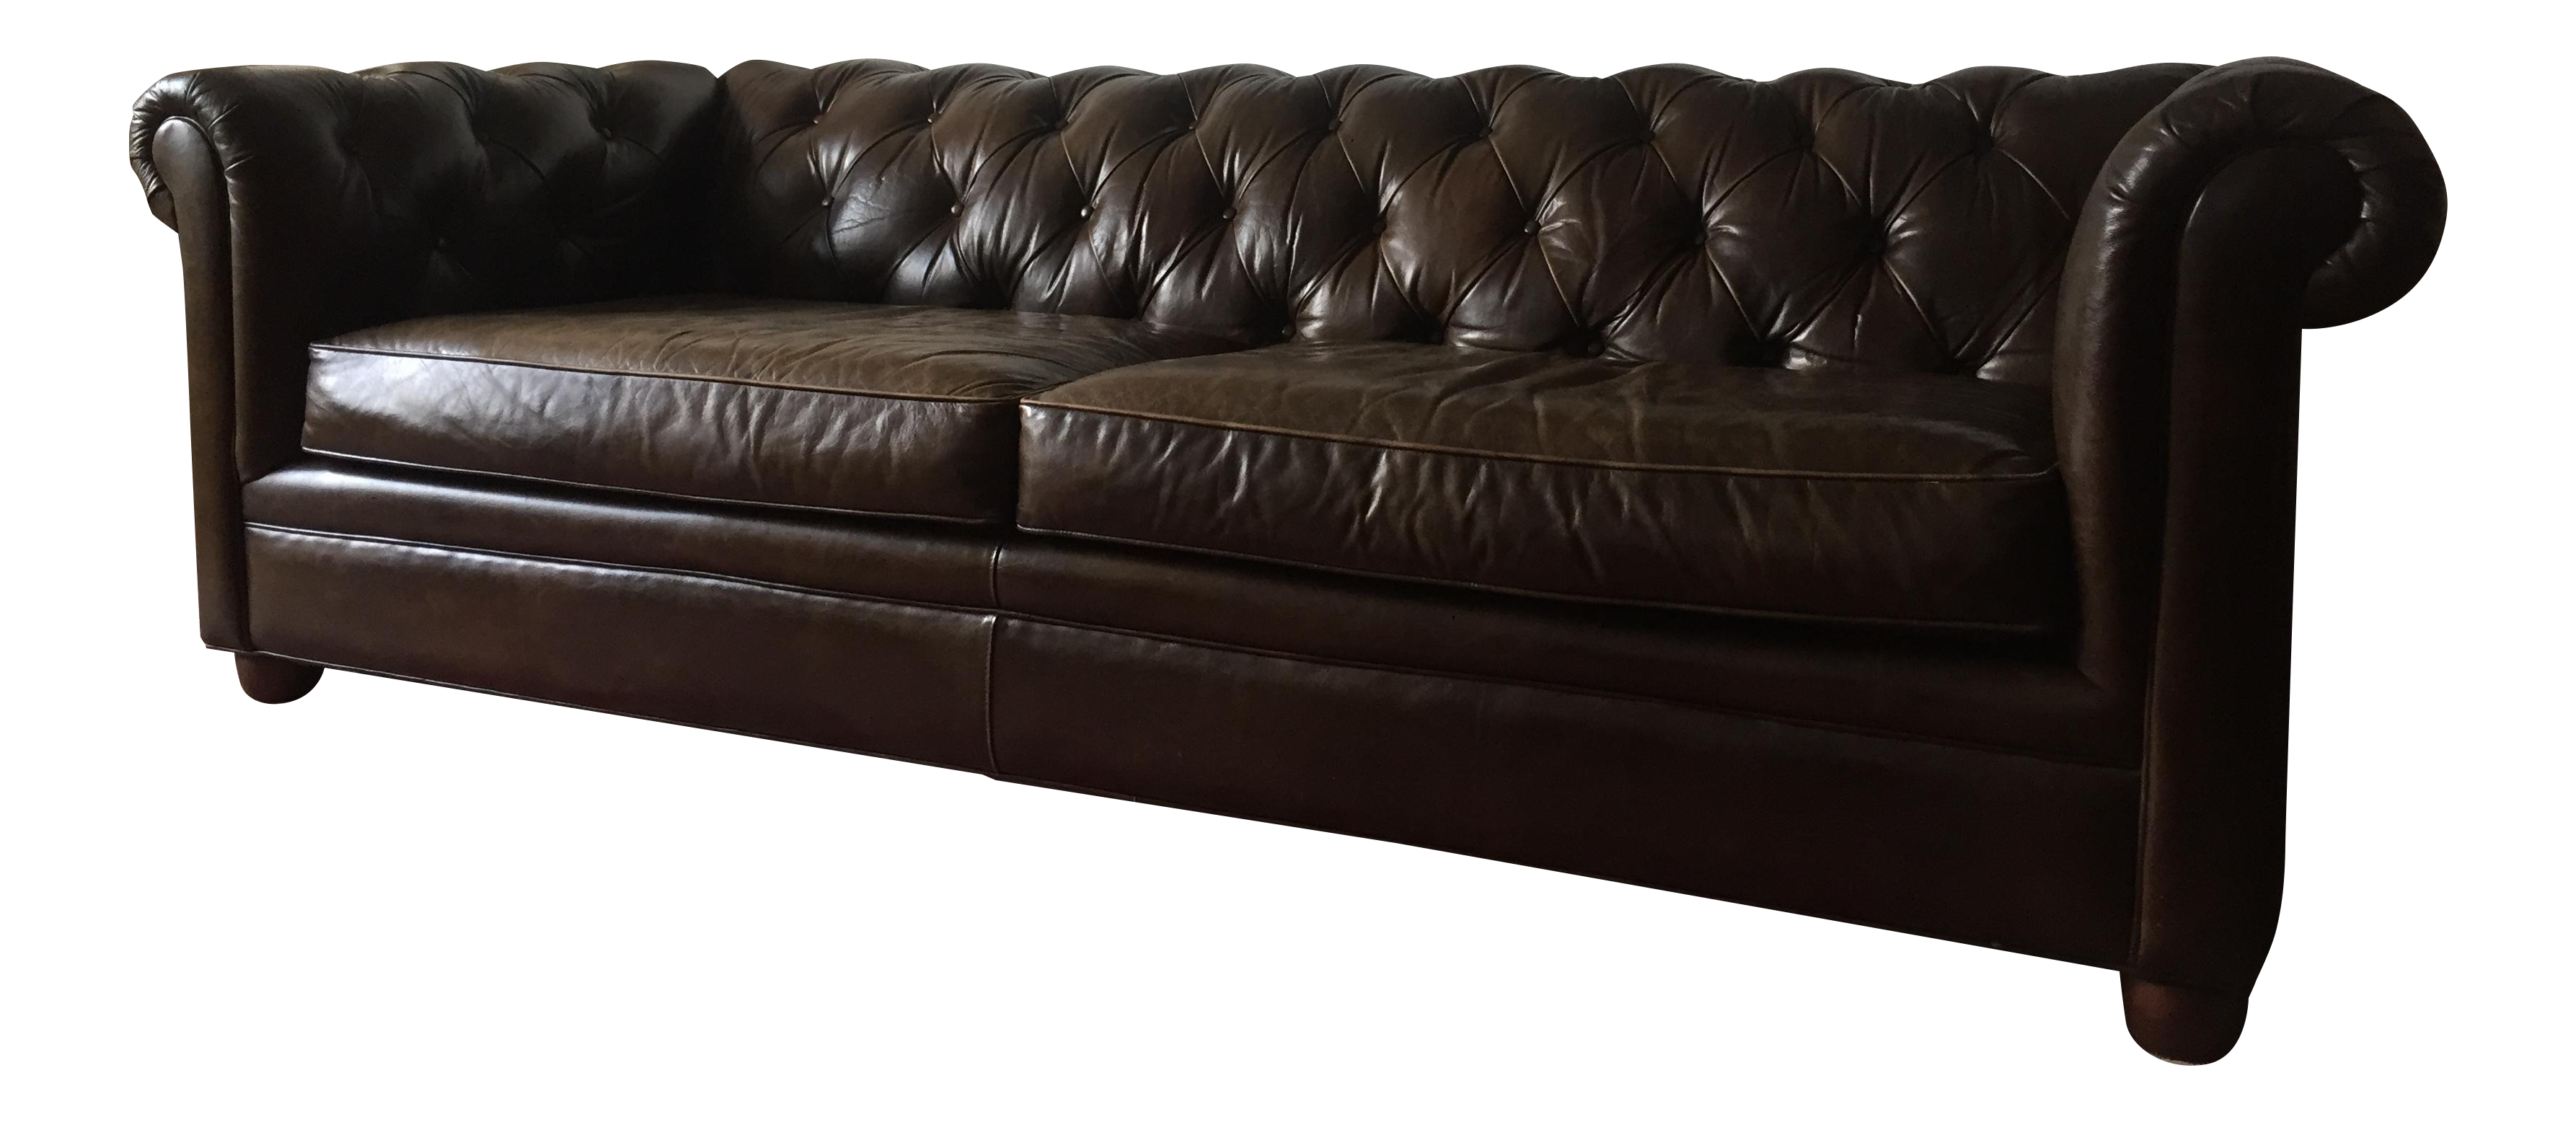 Chesterfield Sofa Pottery Barn chesterfield upholstered sofa